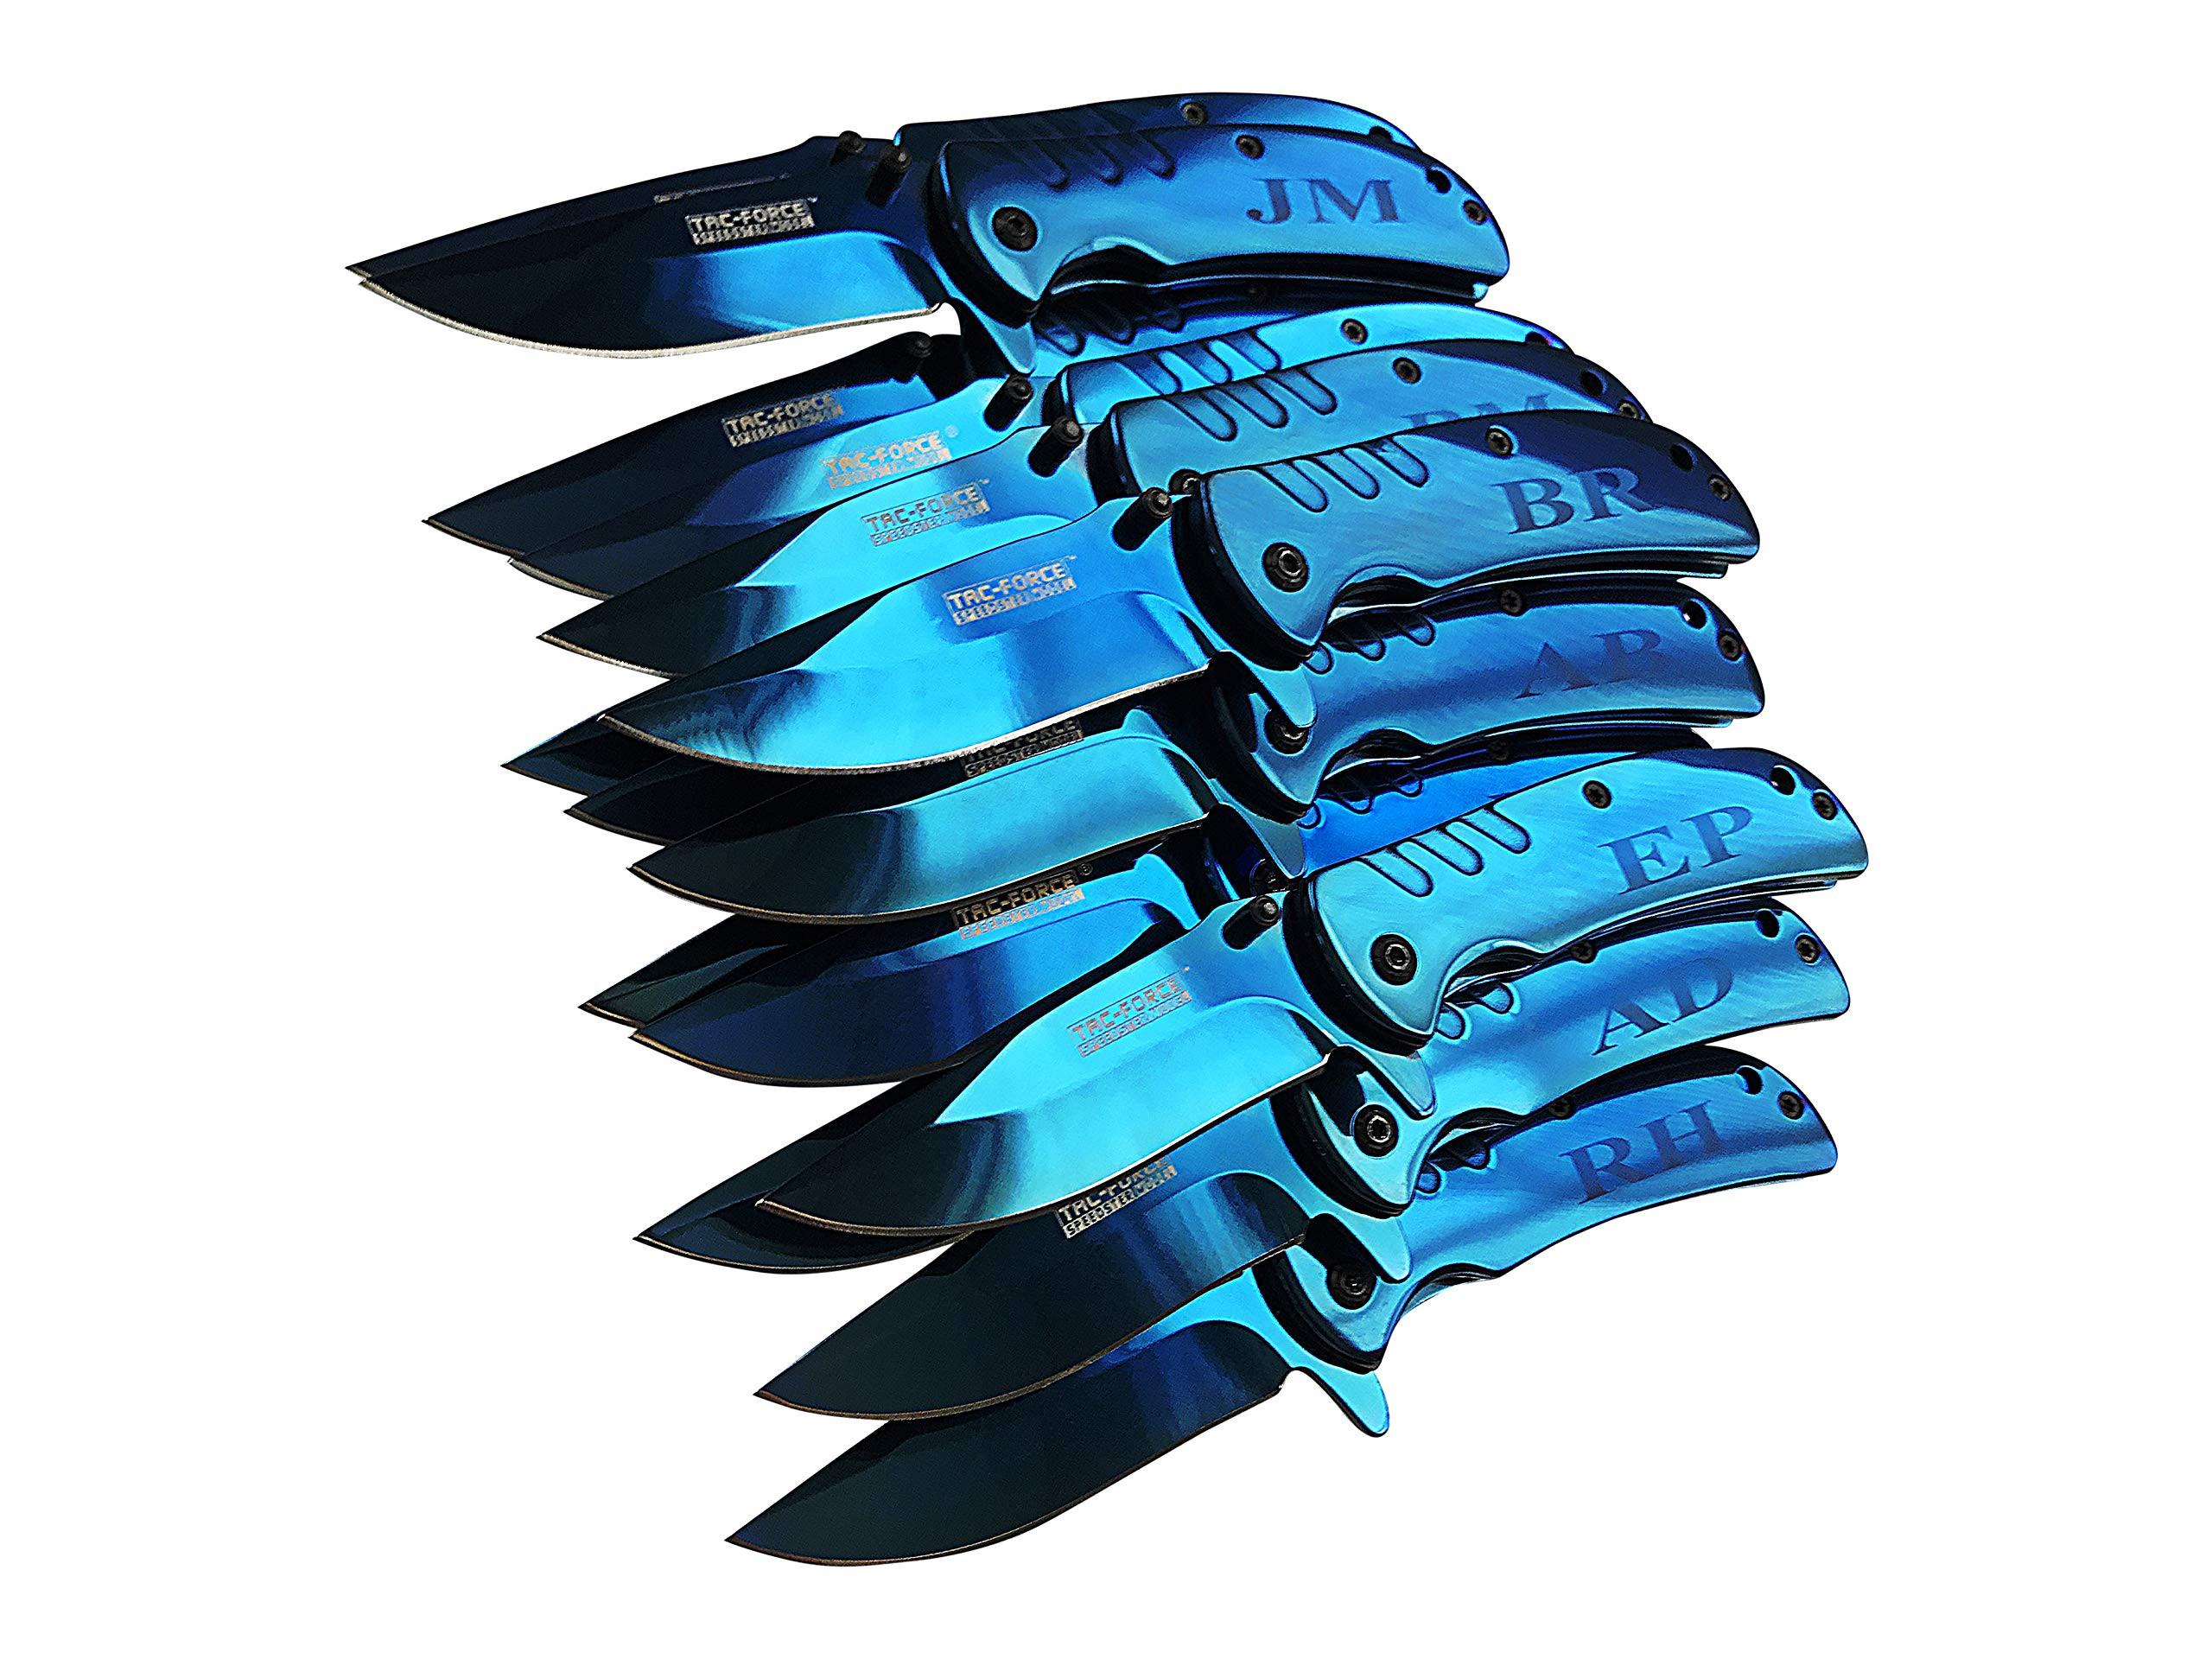 Eternity Engraving 5 Engraved Pocket Knifes, 5 Folding Pocket Knives Gift Set Personalized for Men and Women, Customized Knife Gift (Blue)